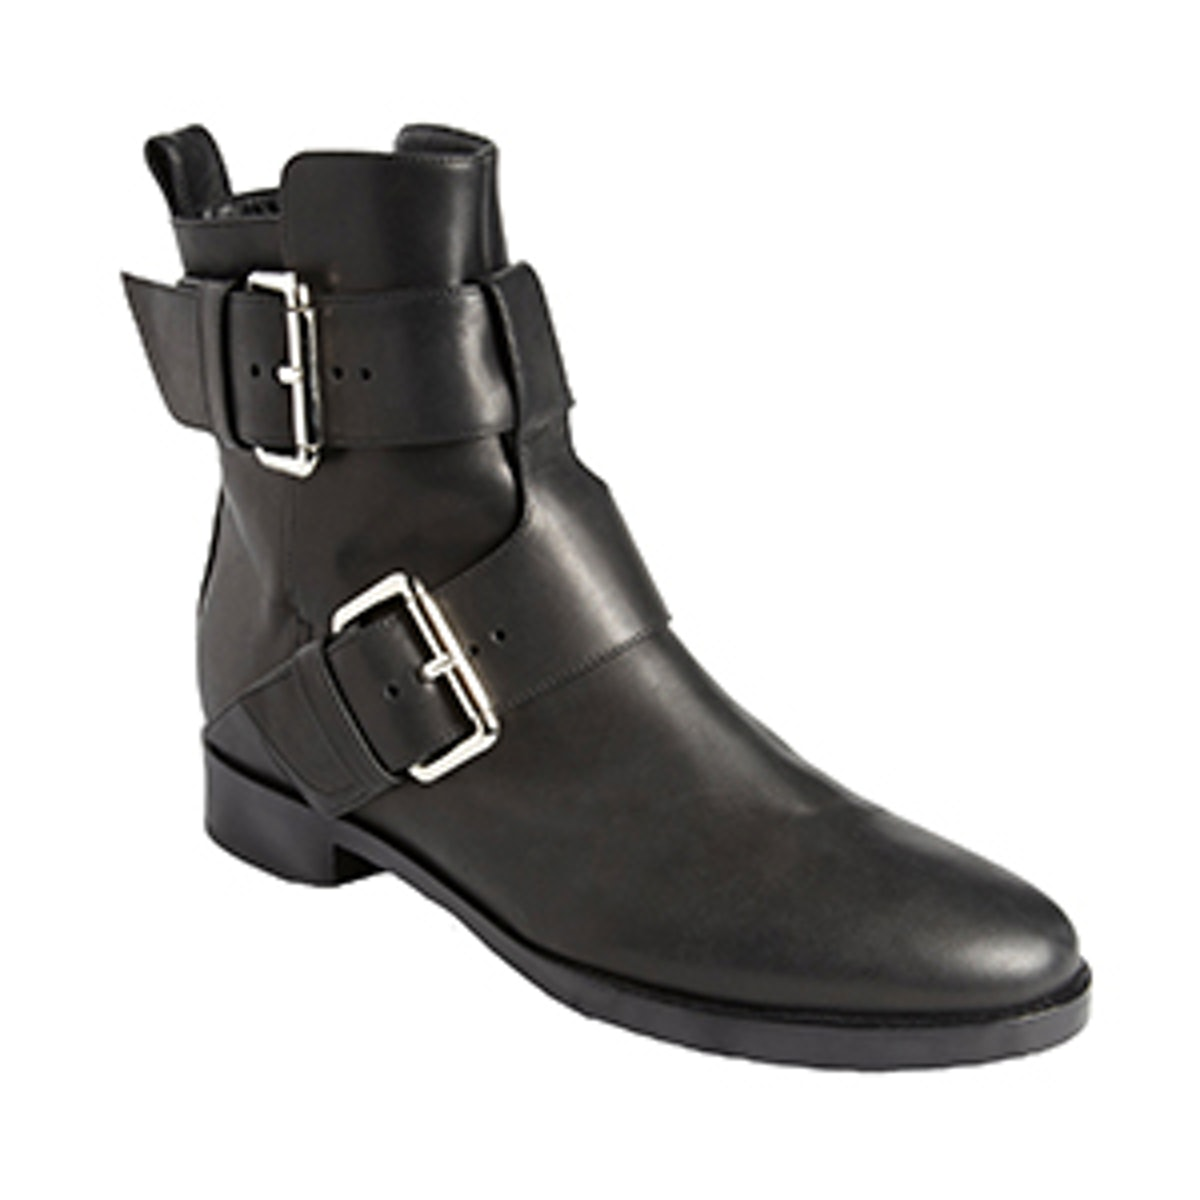 Double-Buckle Motorcycle Boots